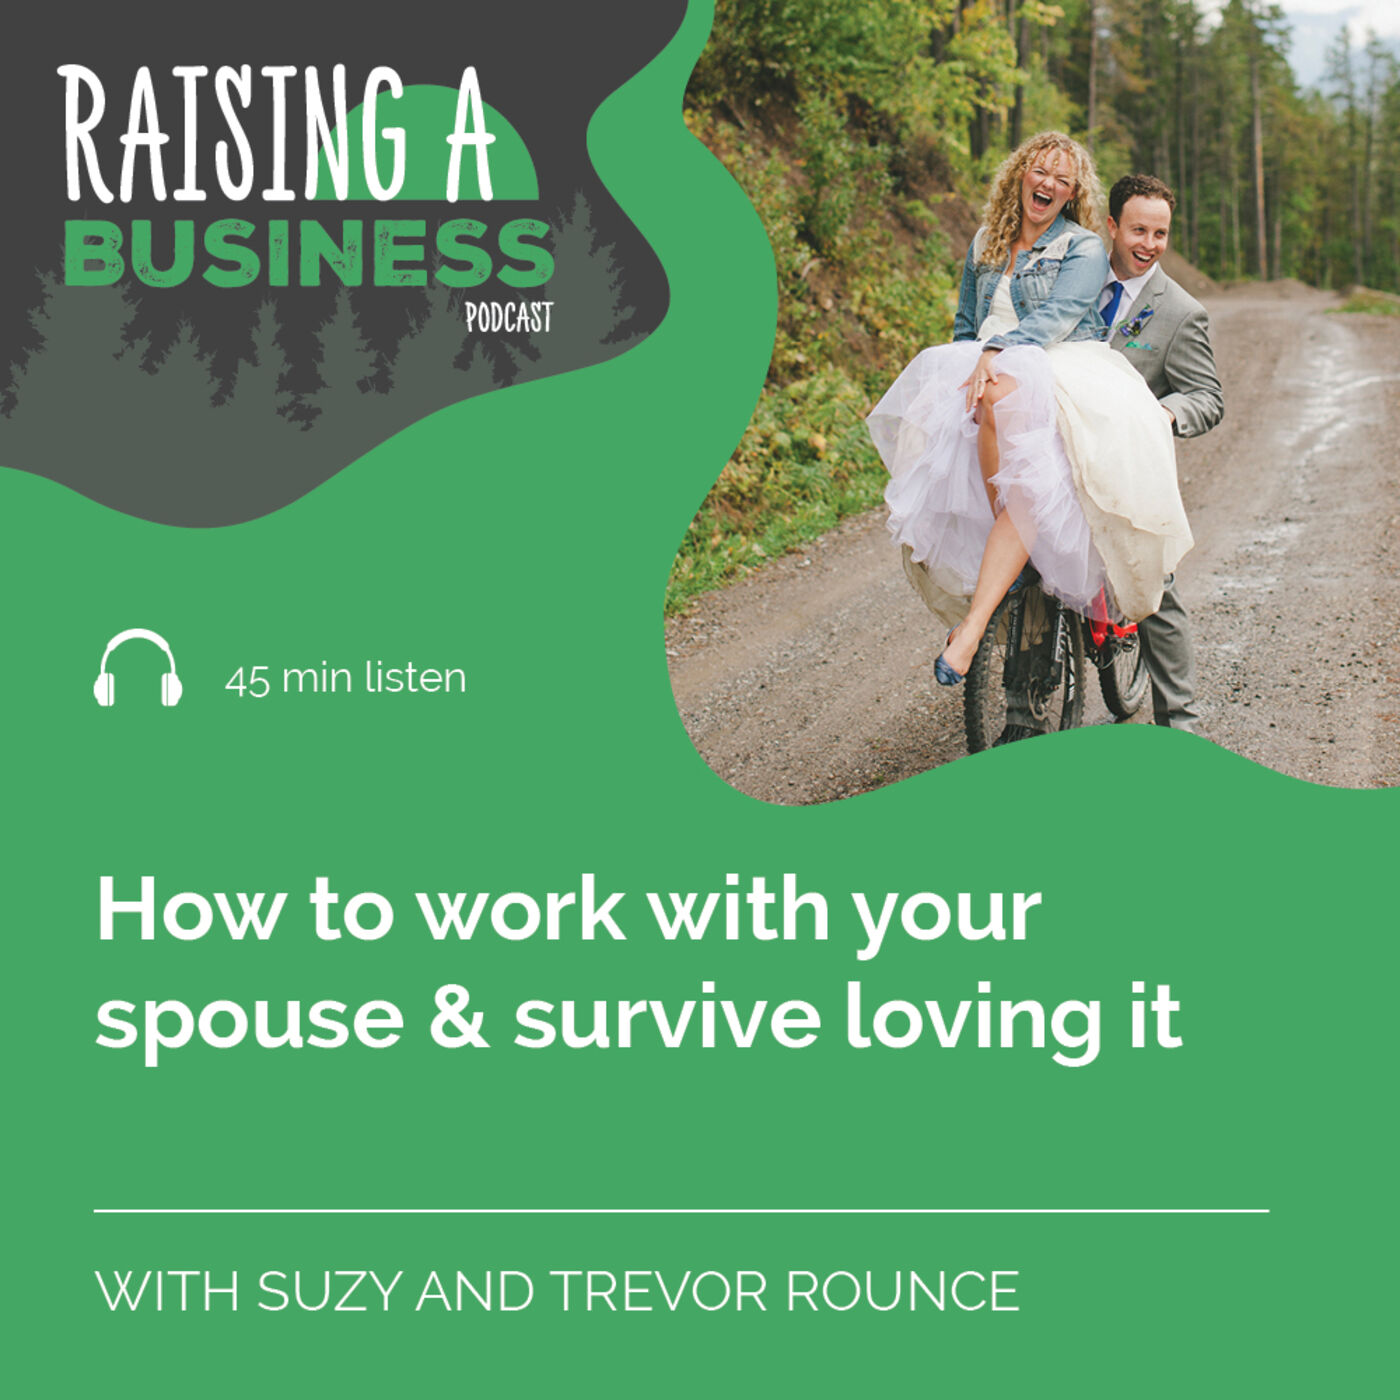 RAB 013 How to work with your spouse & survive loving it